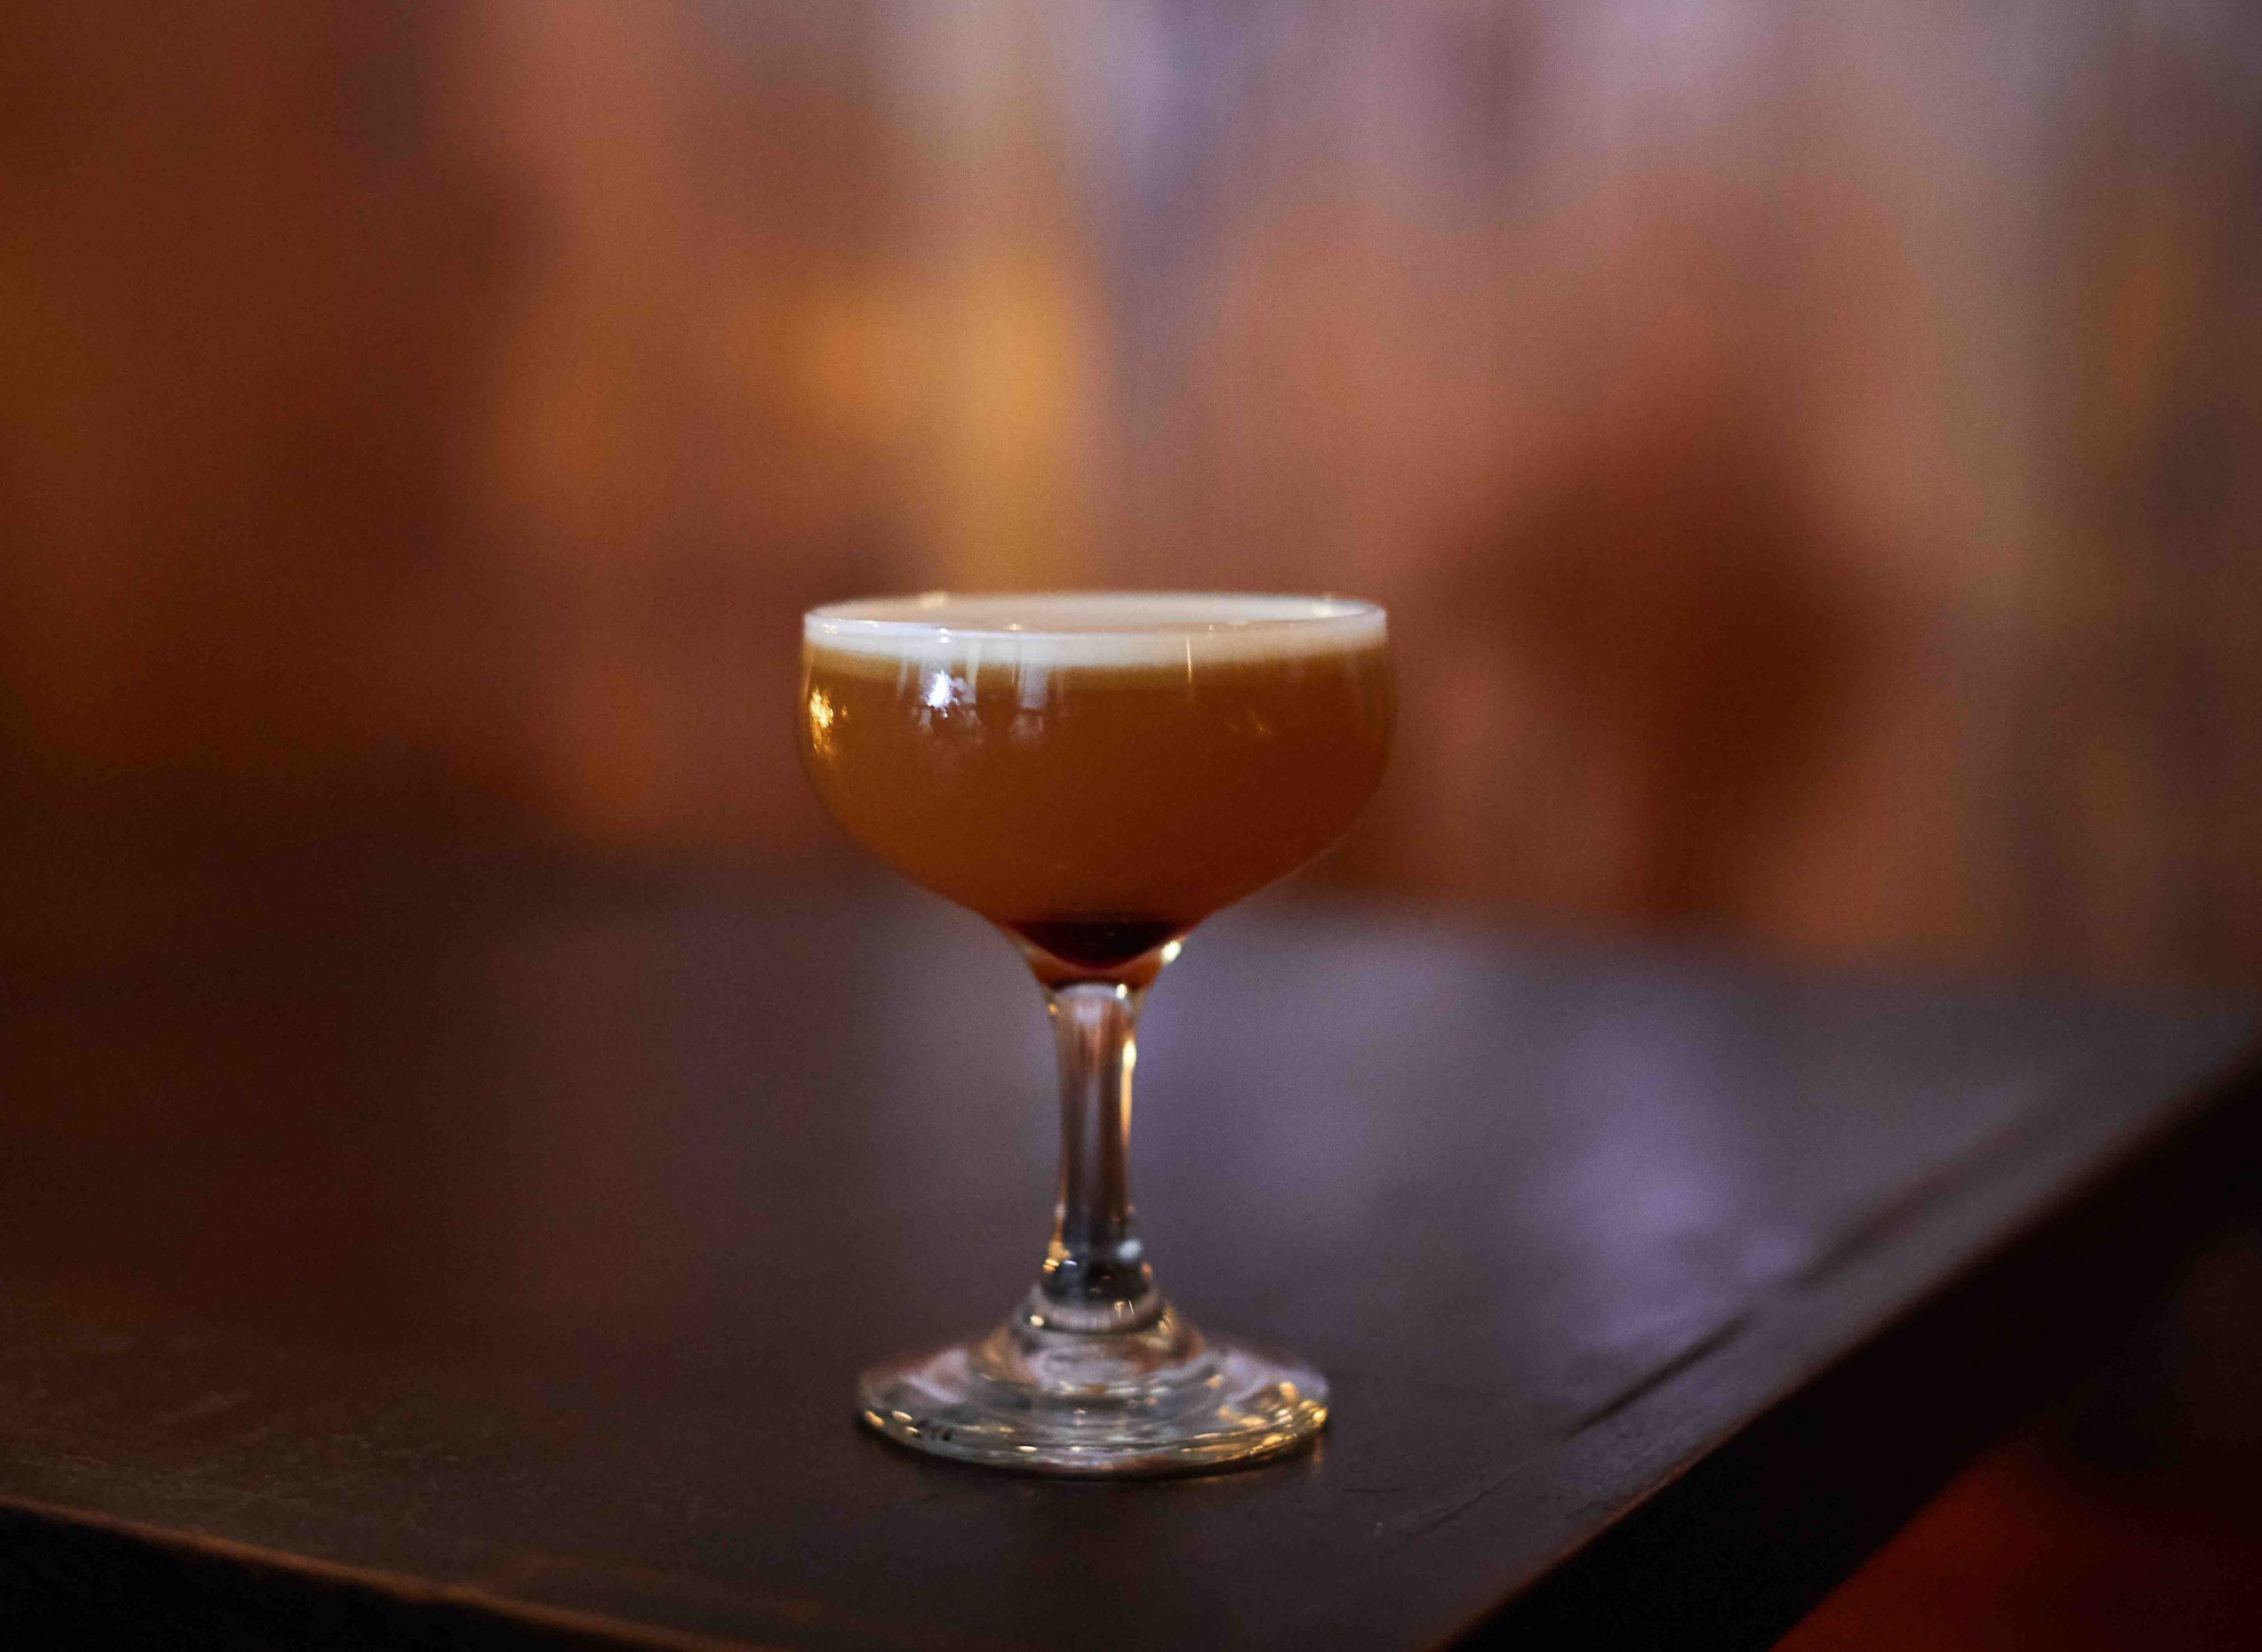 Today Is RyeDay! Let's Toast Every Friday the 13th With These Whiskey Cocktails